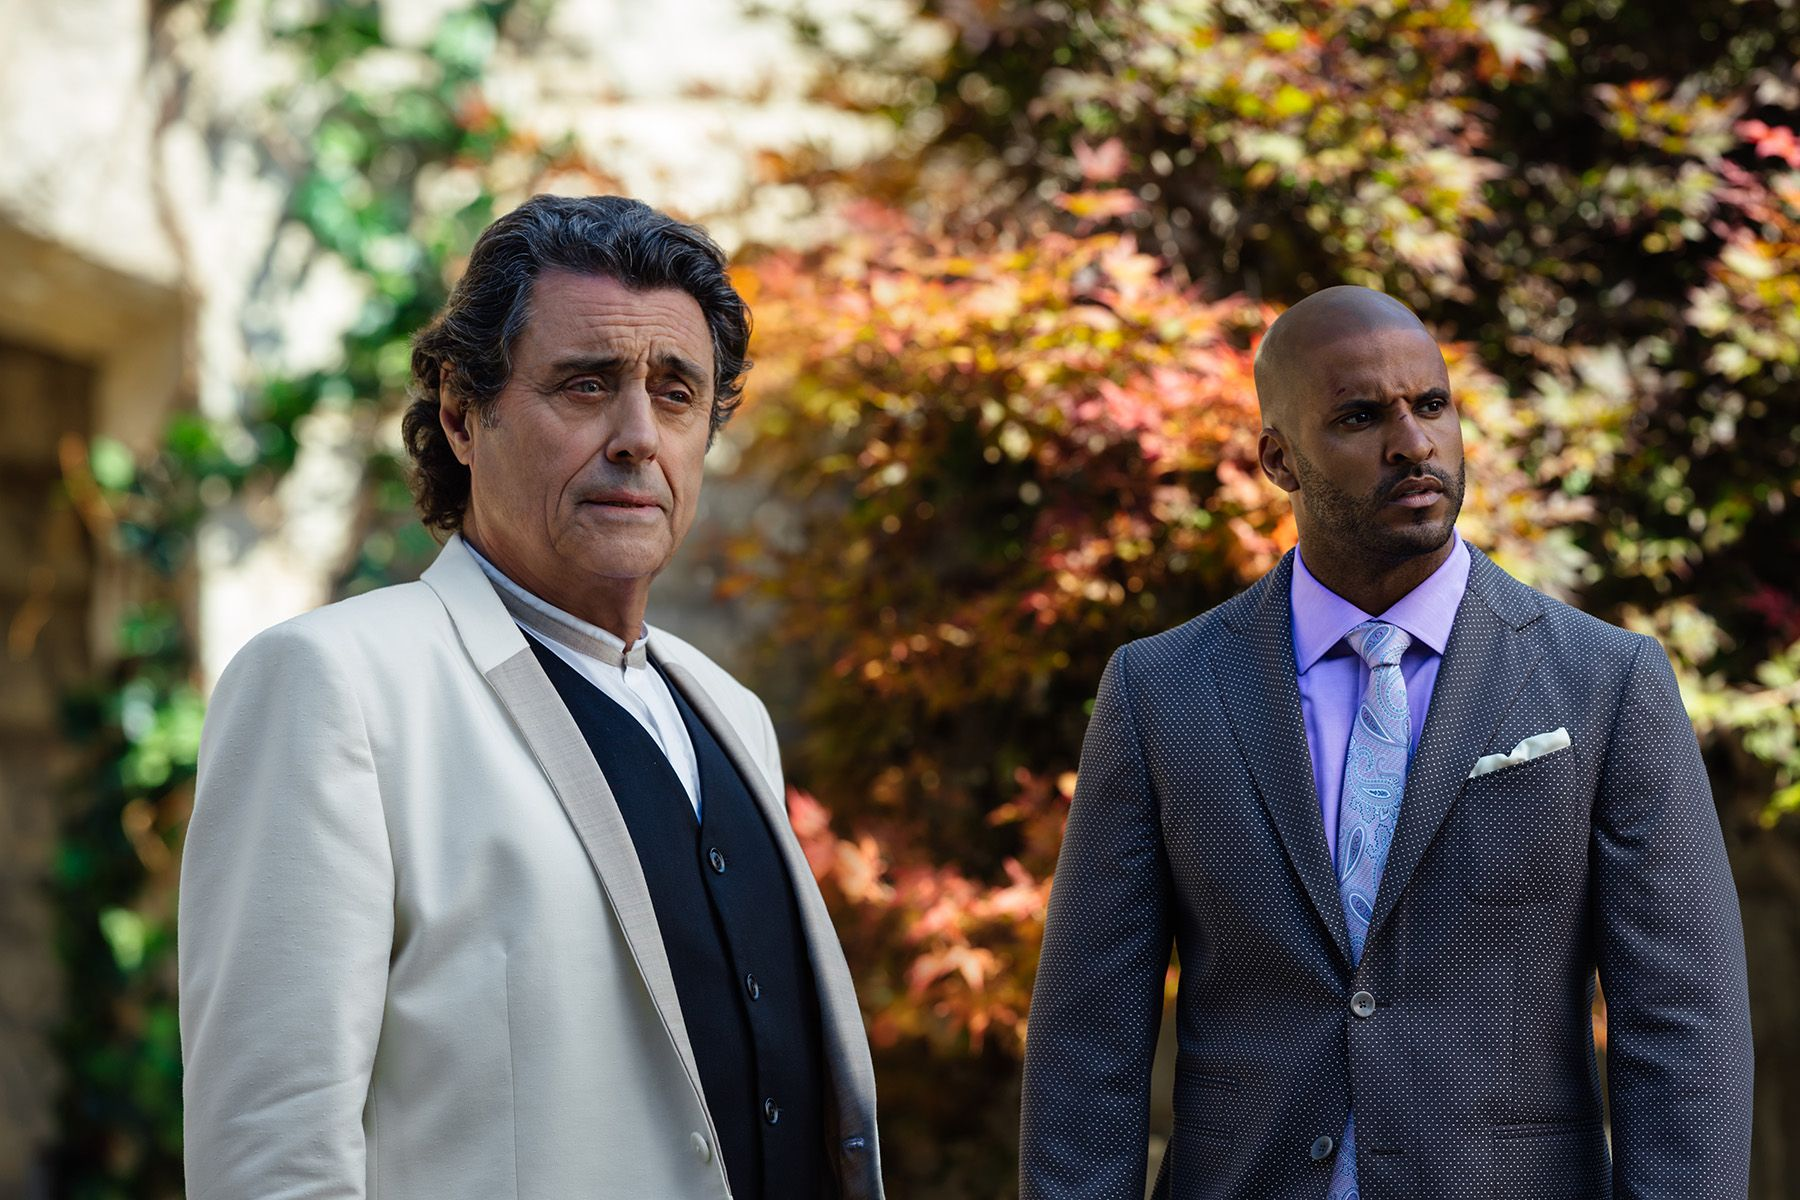 'American Gods' season 2 facing challenges to start production